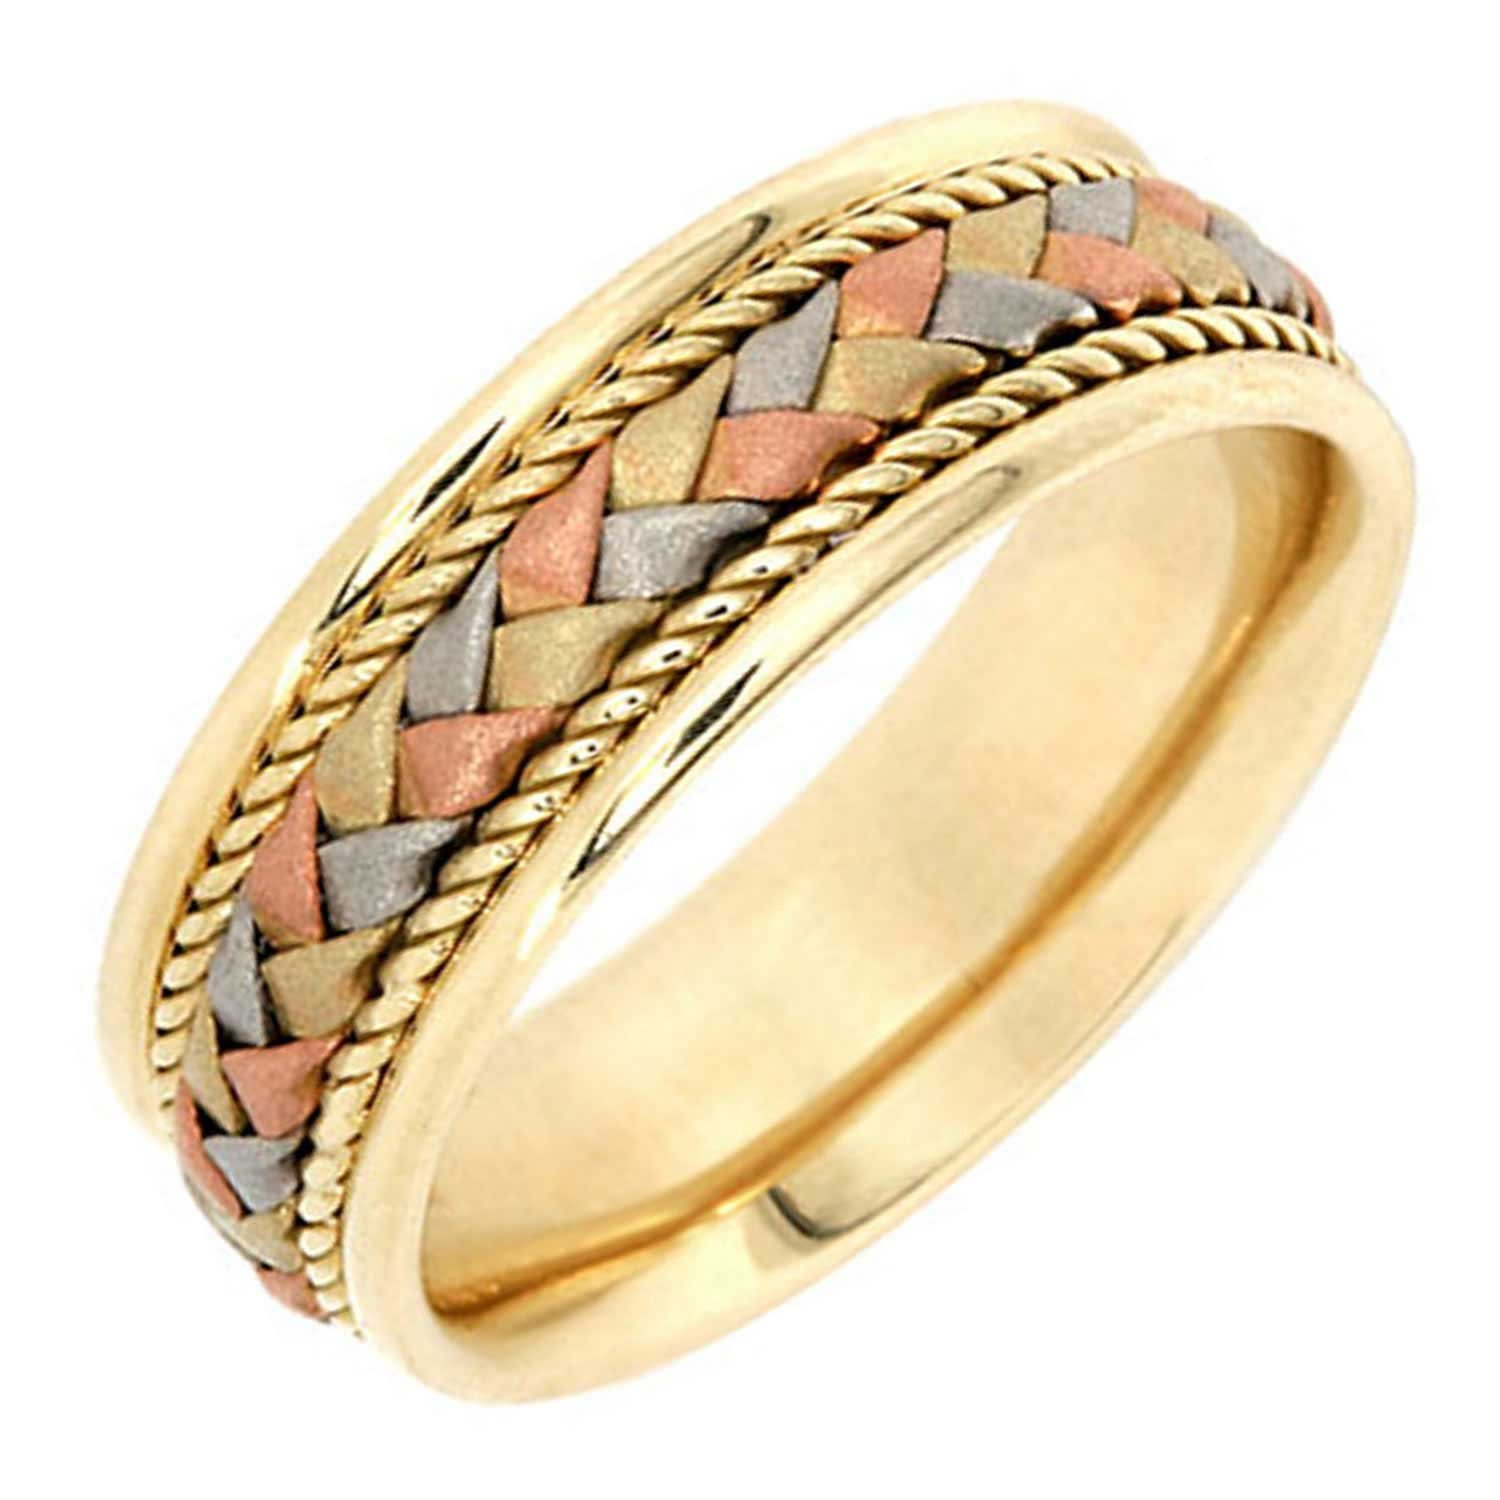 14K Tri Color Gold Braided Basket Weave Women's Comfort Fit Wedding Band (7.5mm) Size-8c1